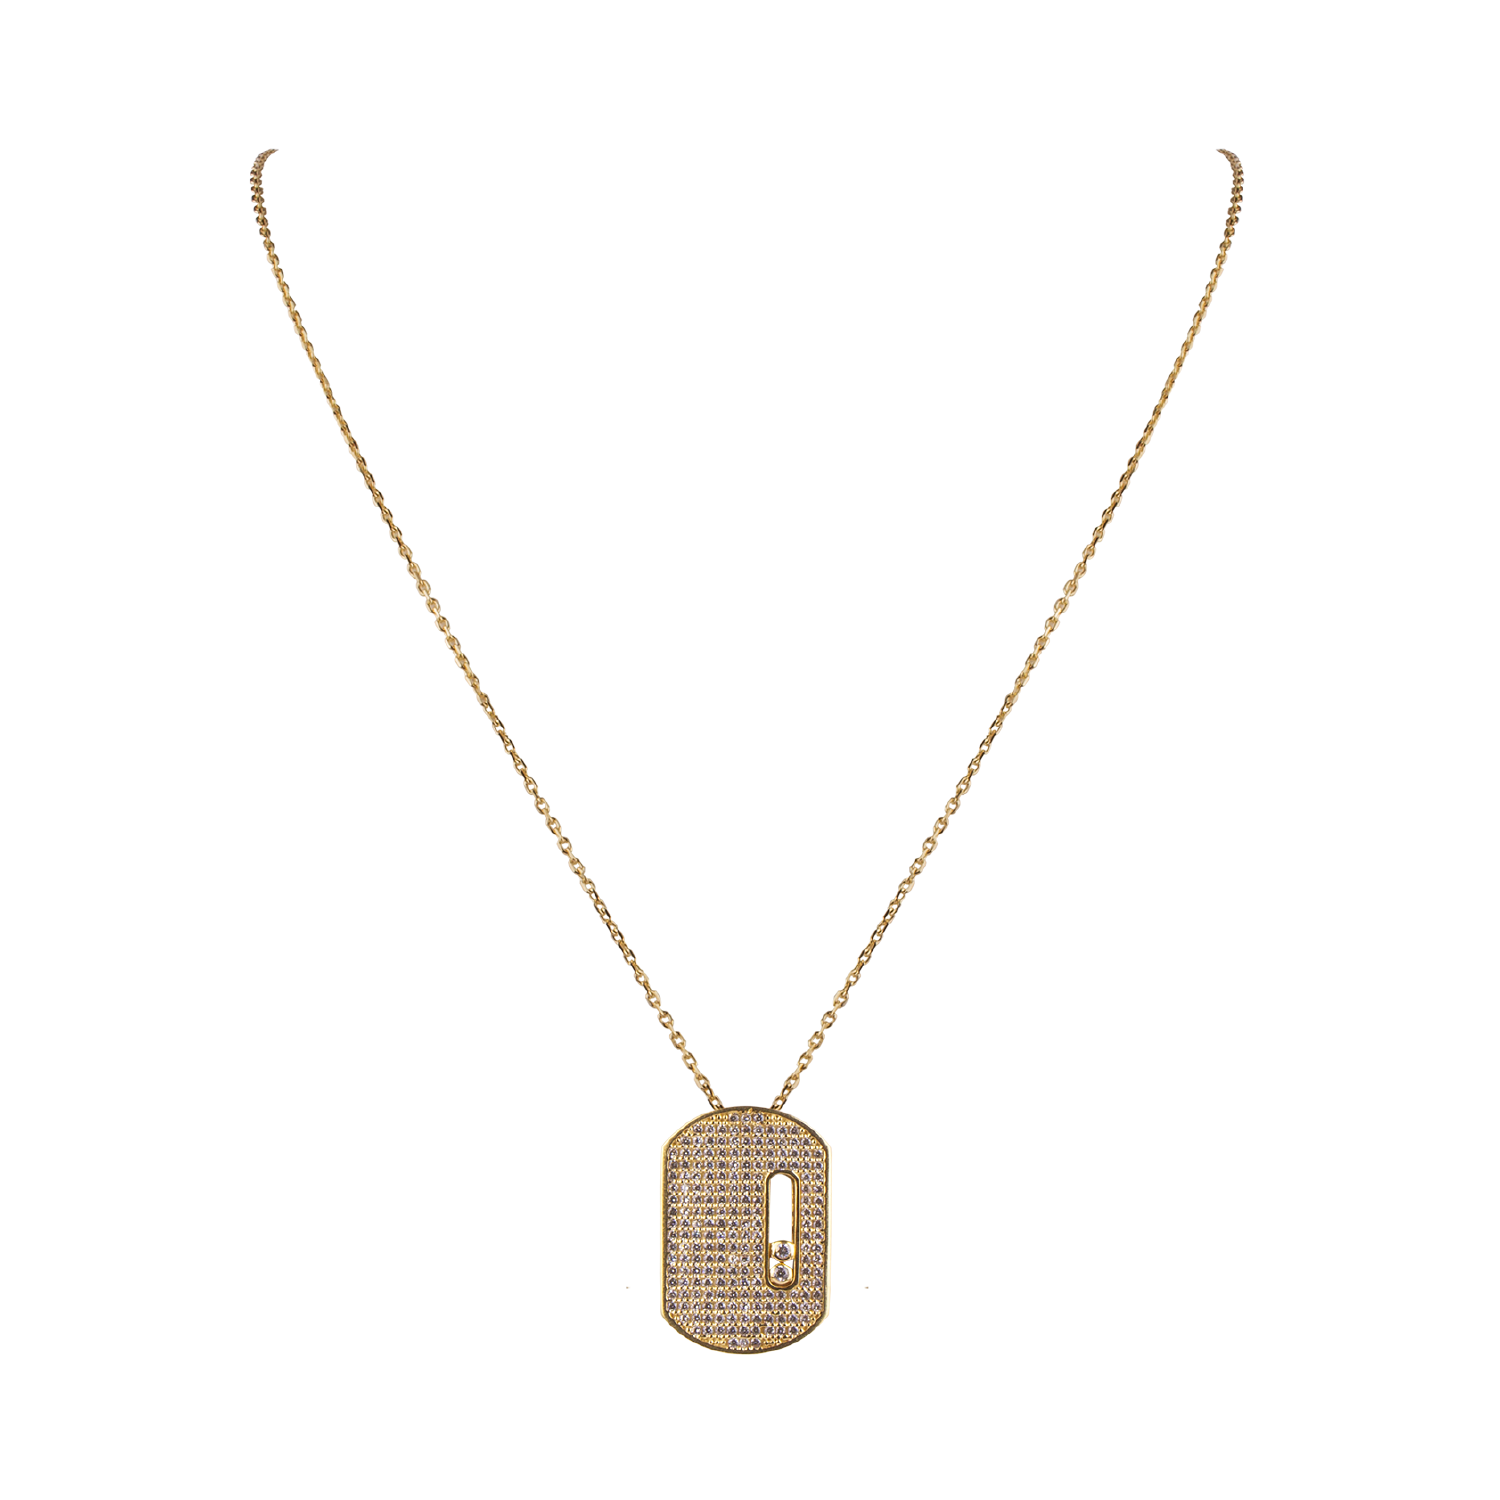 COLLIER 19112018-4